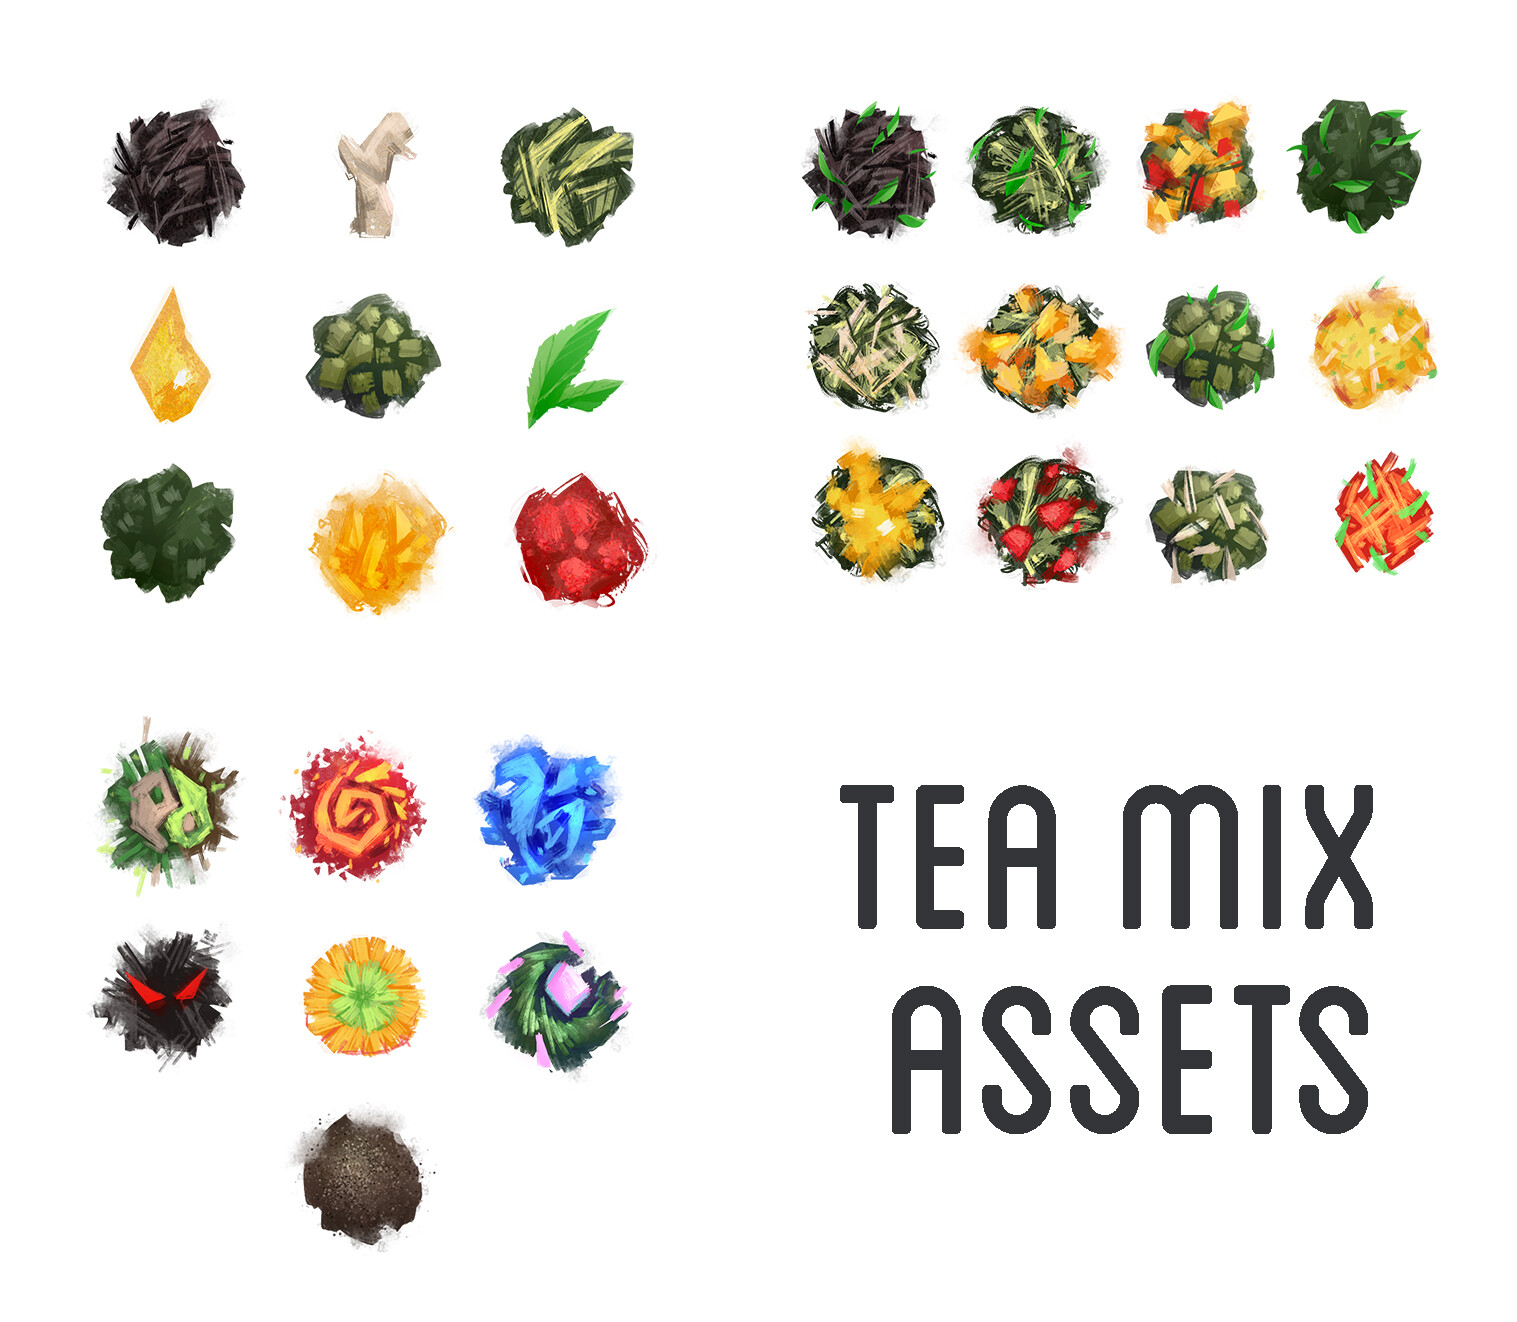 Tea leaf pile assets I worked on.